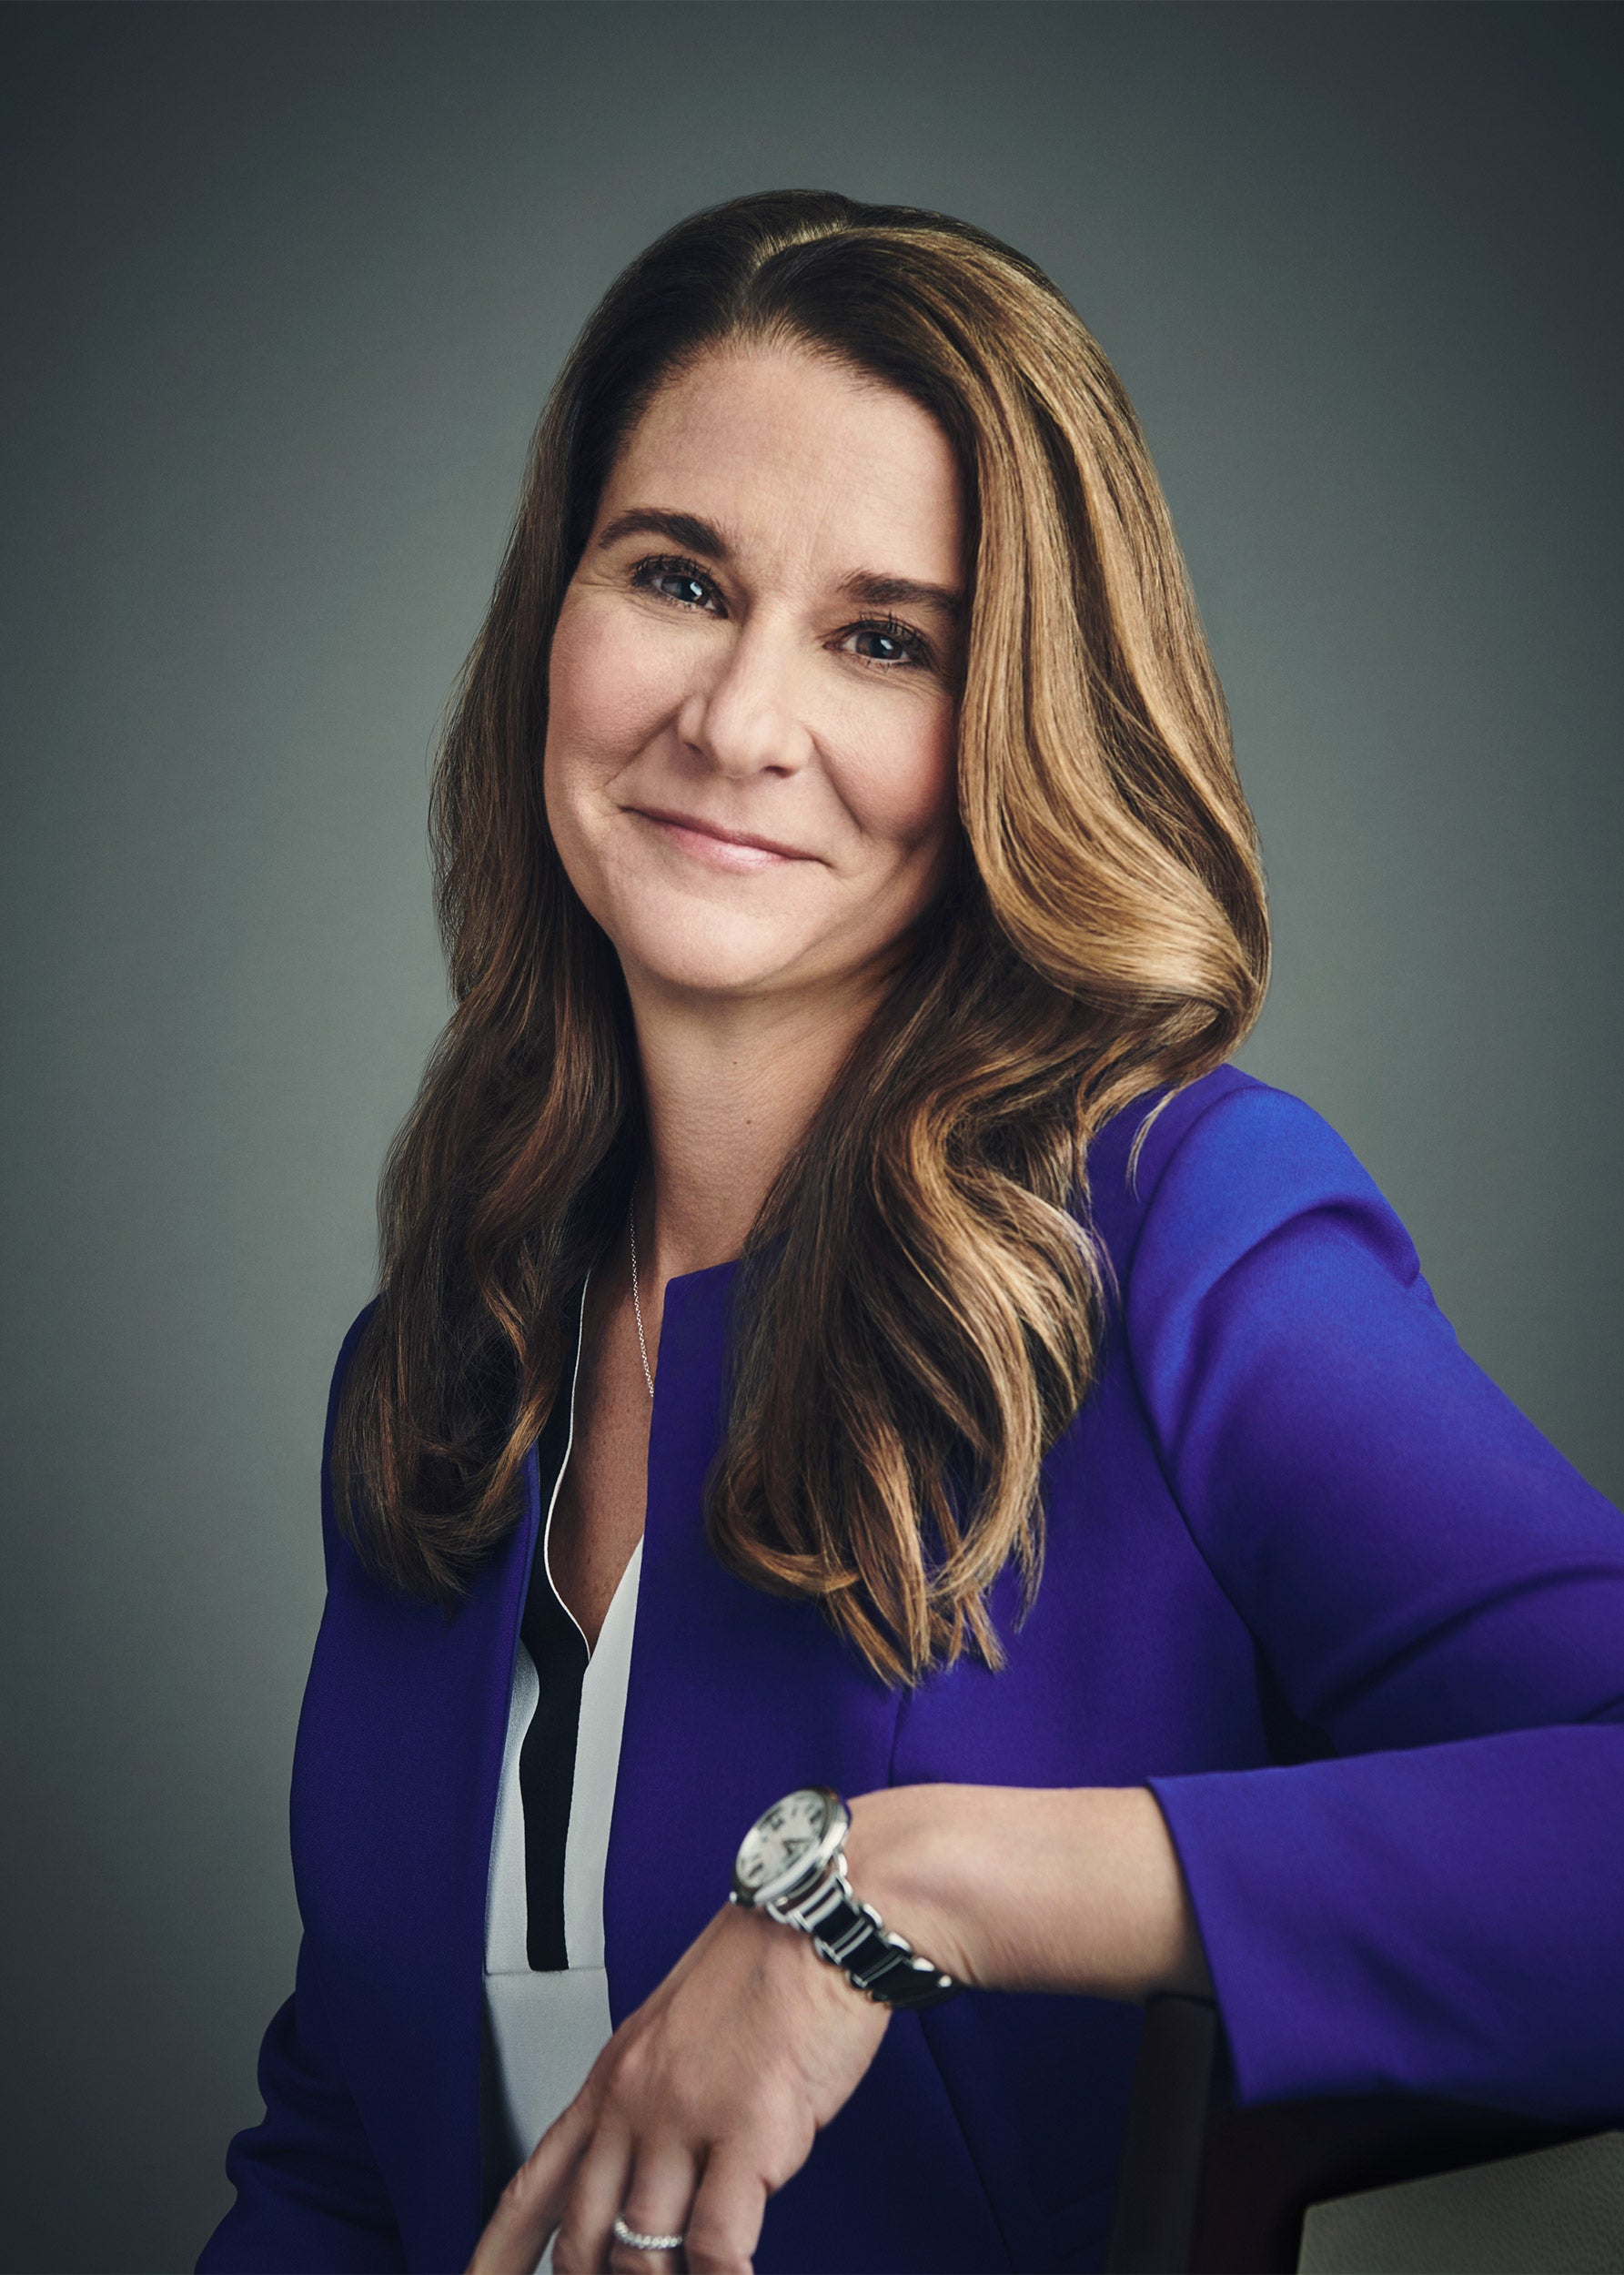 Melinda Gates will be  honored on Radcliffe Day, May 29. Credit: Bill & Melinda Gates Foundation